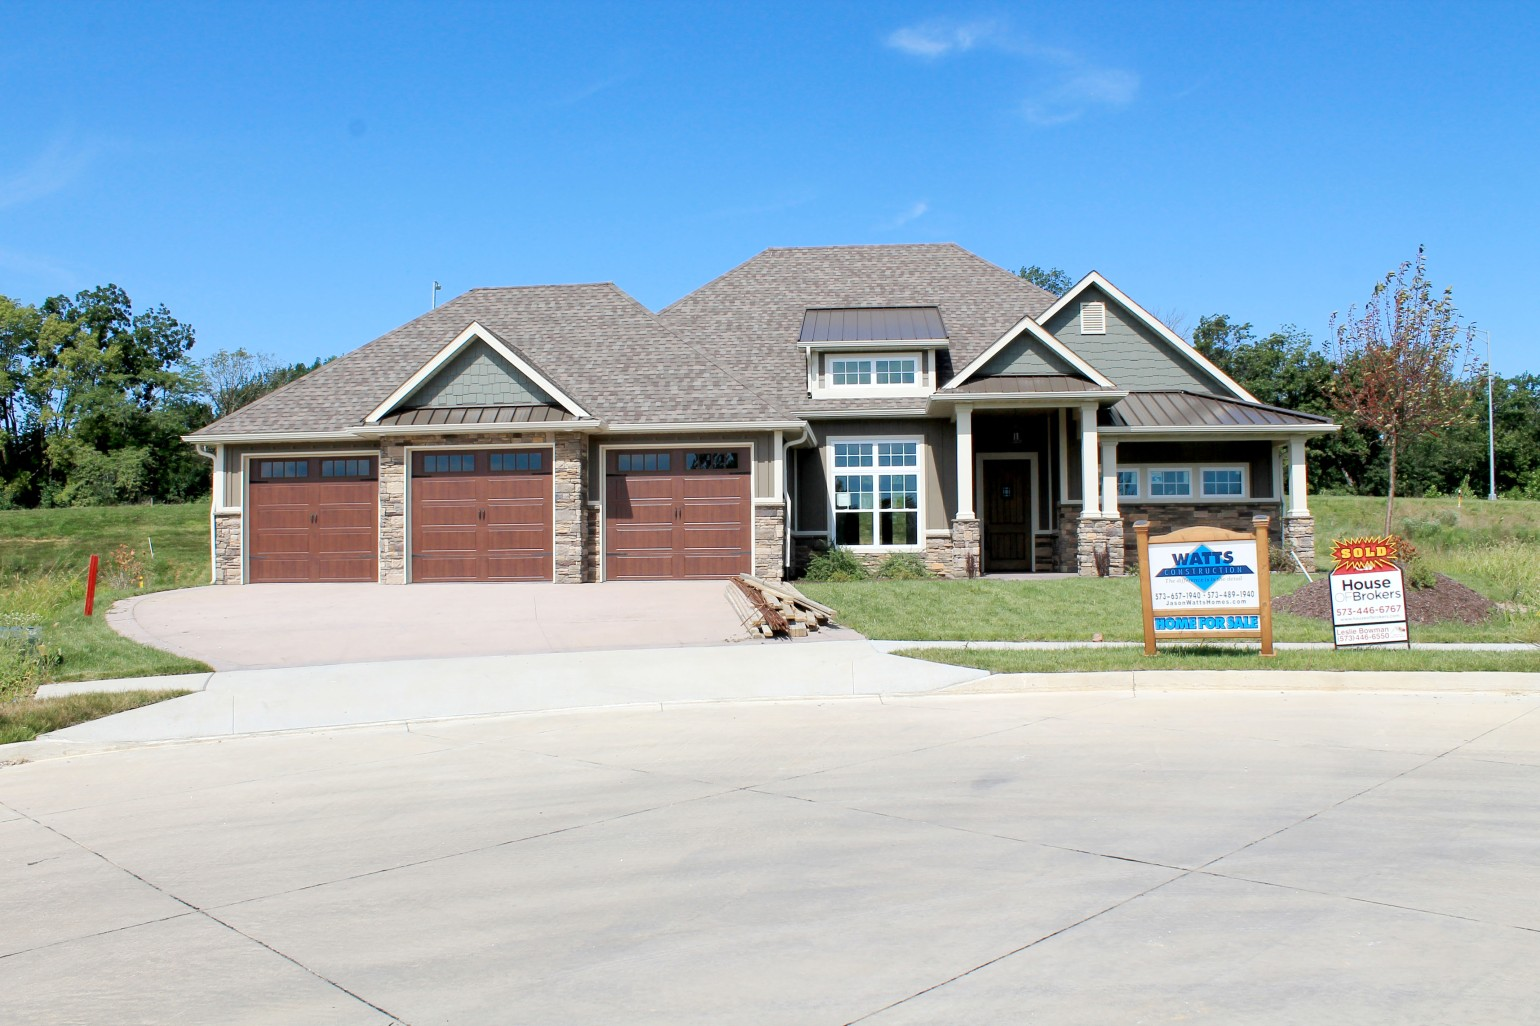 1101 Shallow-front house